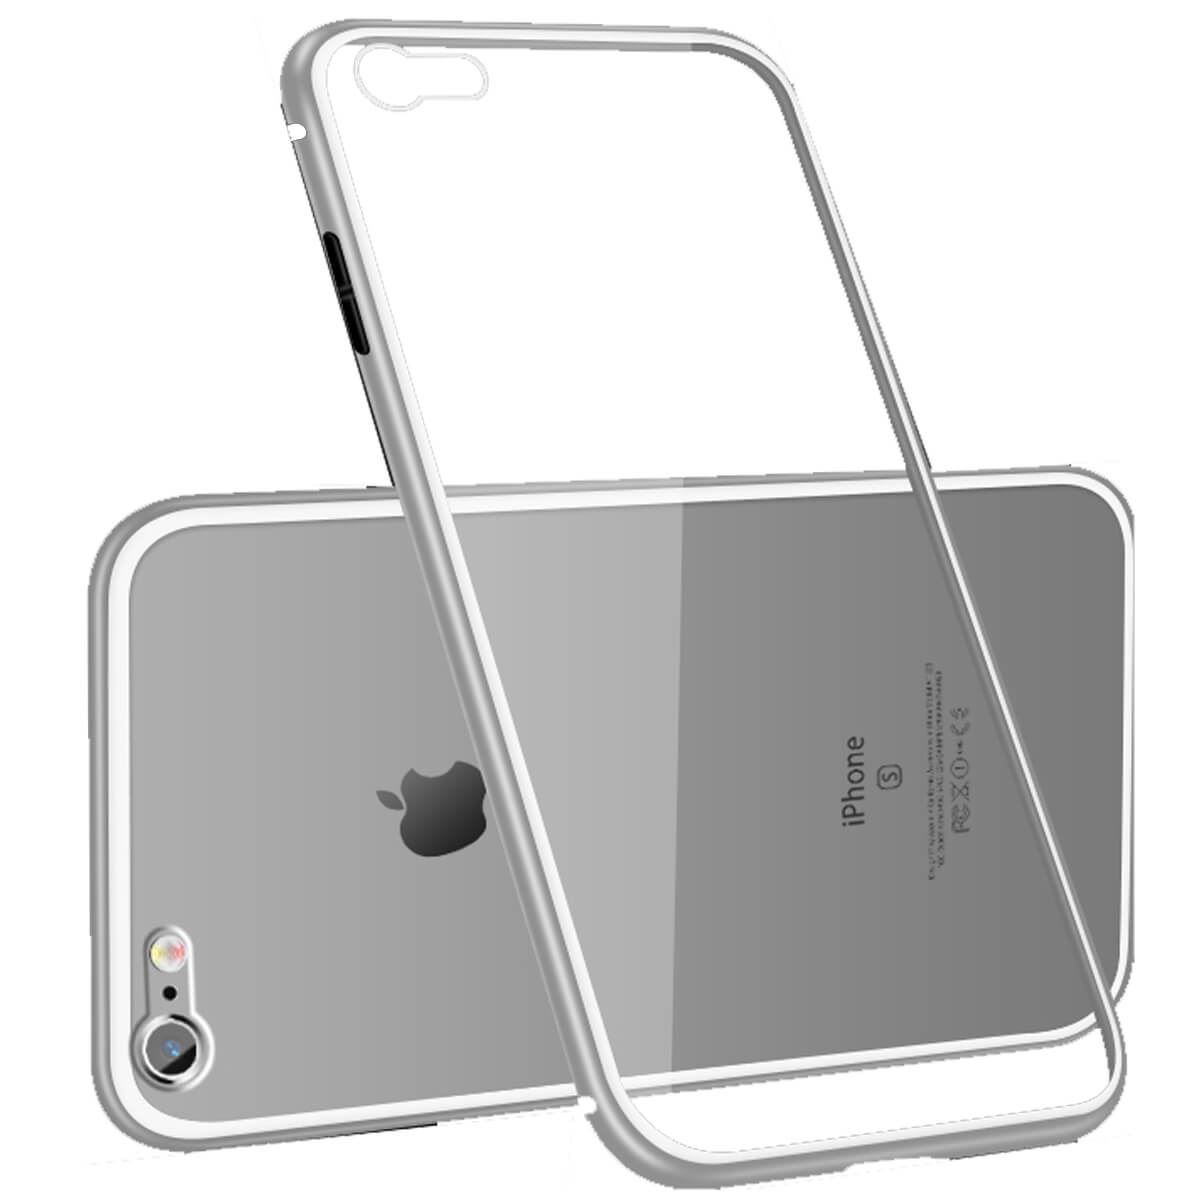 Metal-Magnetic-Adsorption-Case-For-iPhone-X-8-7-6s-6-Luxury-Tempered-Glass-Cover thumbnail 25